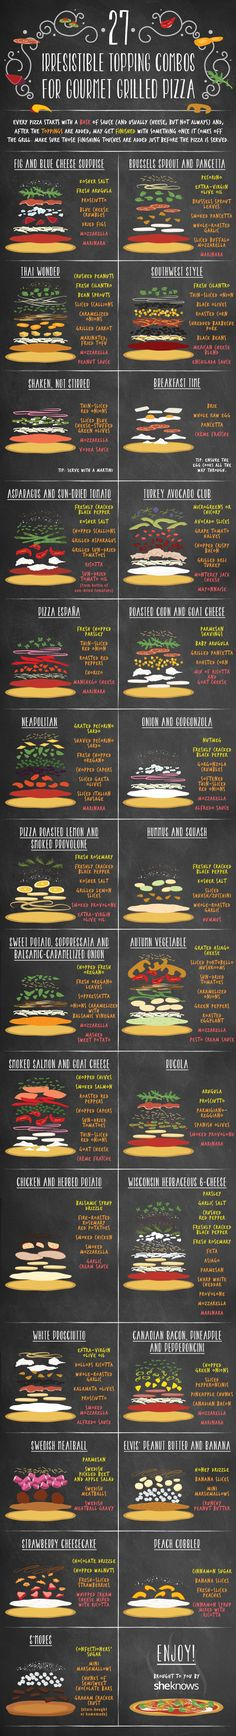 Here are 27 irresistible topping combos for grilled pizza. If you are a pizza lover be sure to check out these topping combos for grilled pizza. Comida Pizza, Homemade Pie, Pizza Party, Pizza Dough, Pizza Pizza, Pizza 101, Pizza Ovens, Vegan Pizza, Italian Recipes